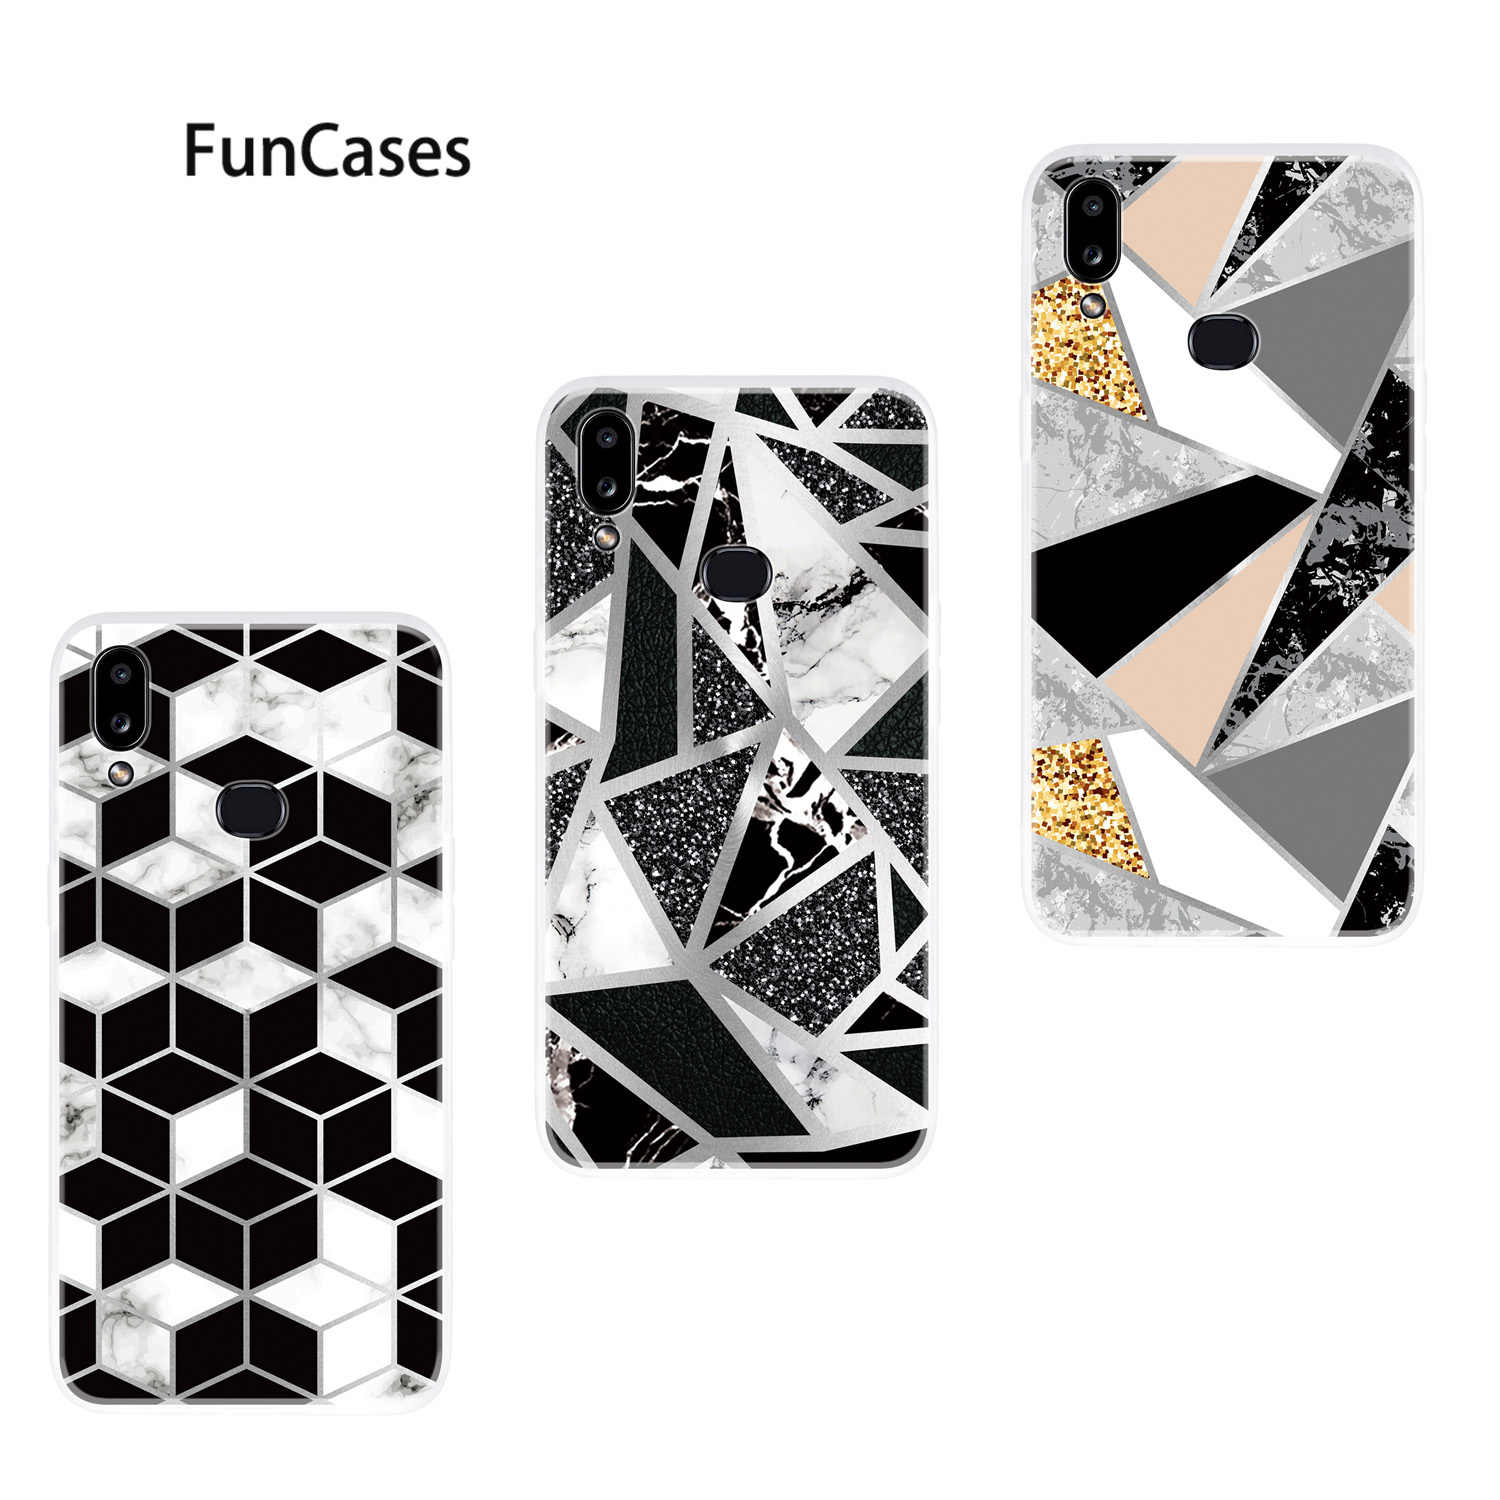 Diamond Soft TPU Case For Samsung A01 Cove Samsung Galaxy A81 A10 A91 J4 Plus A21 J6 2018 A70 A20E A71 A11 A10S Cell Phone Cover